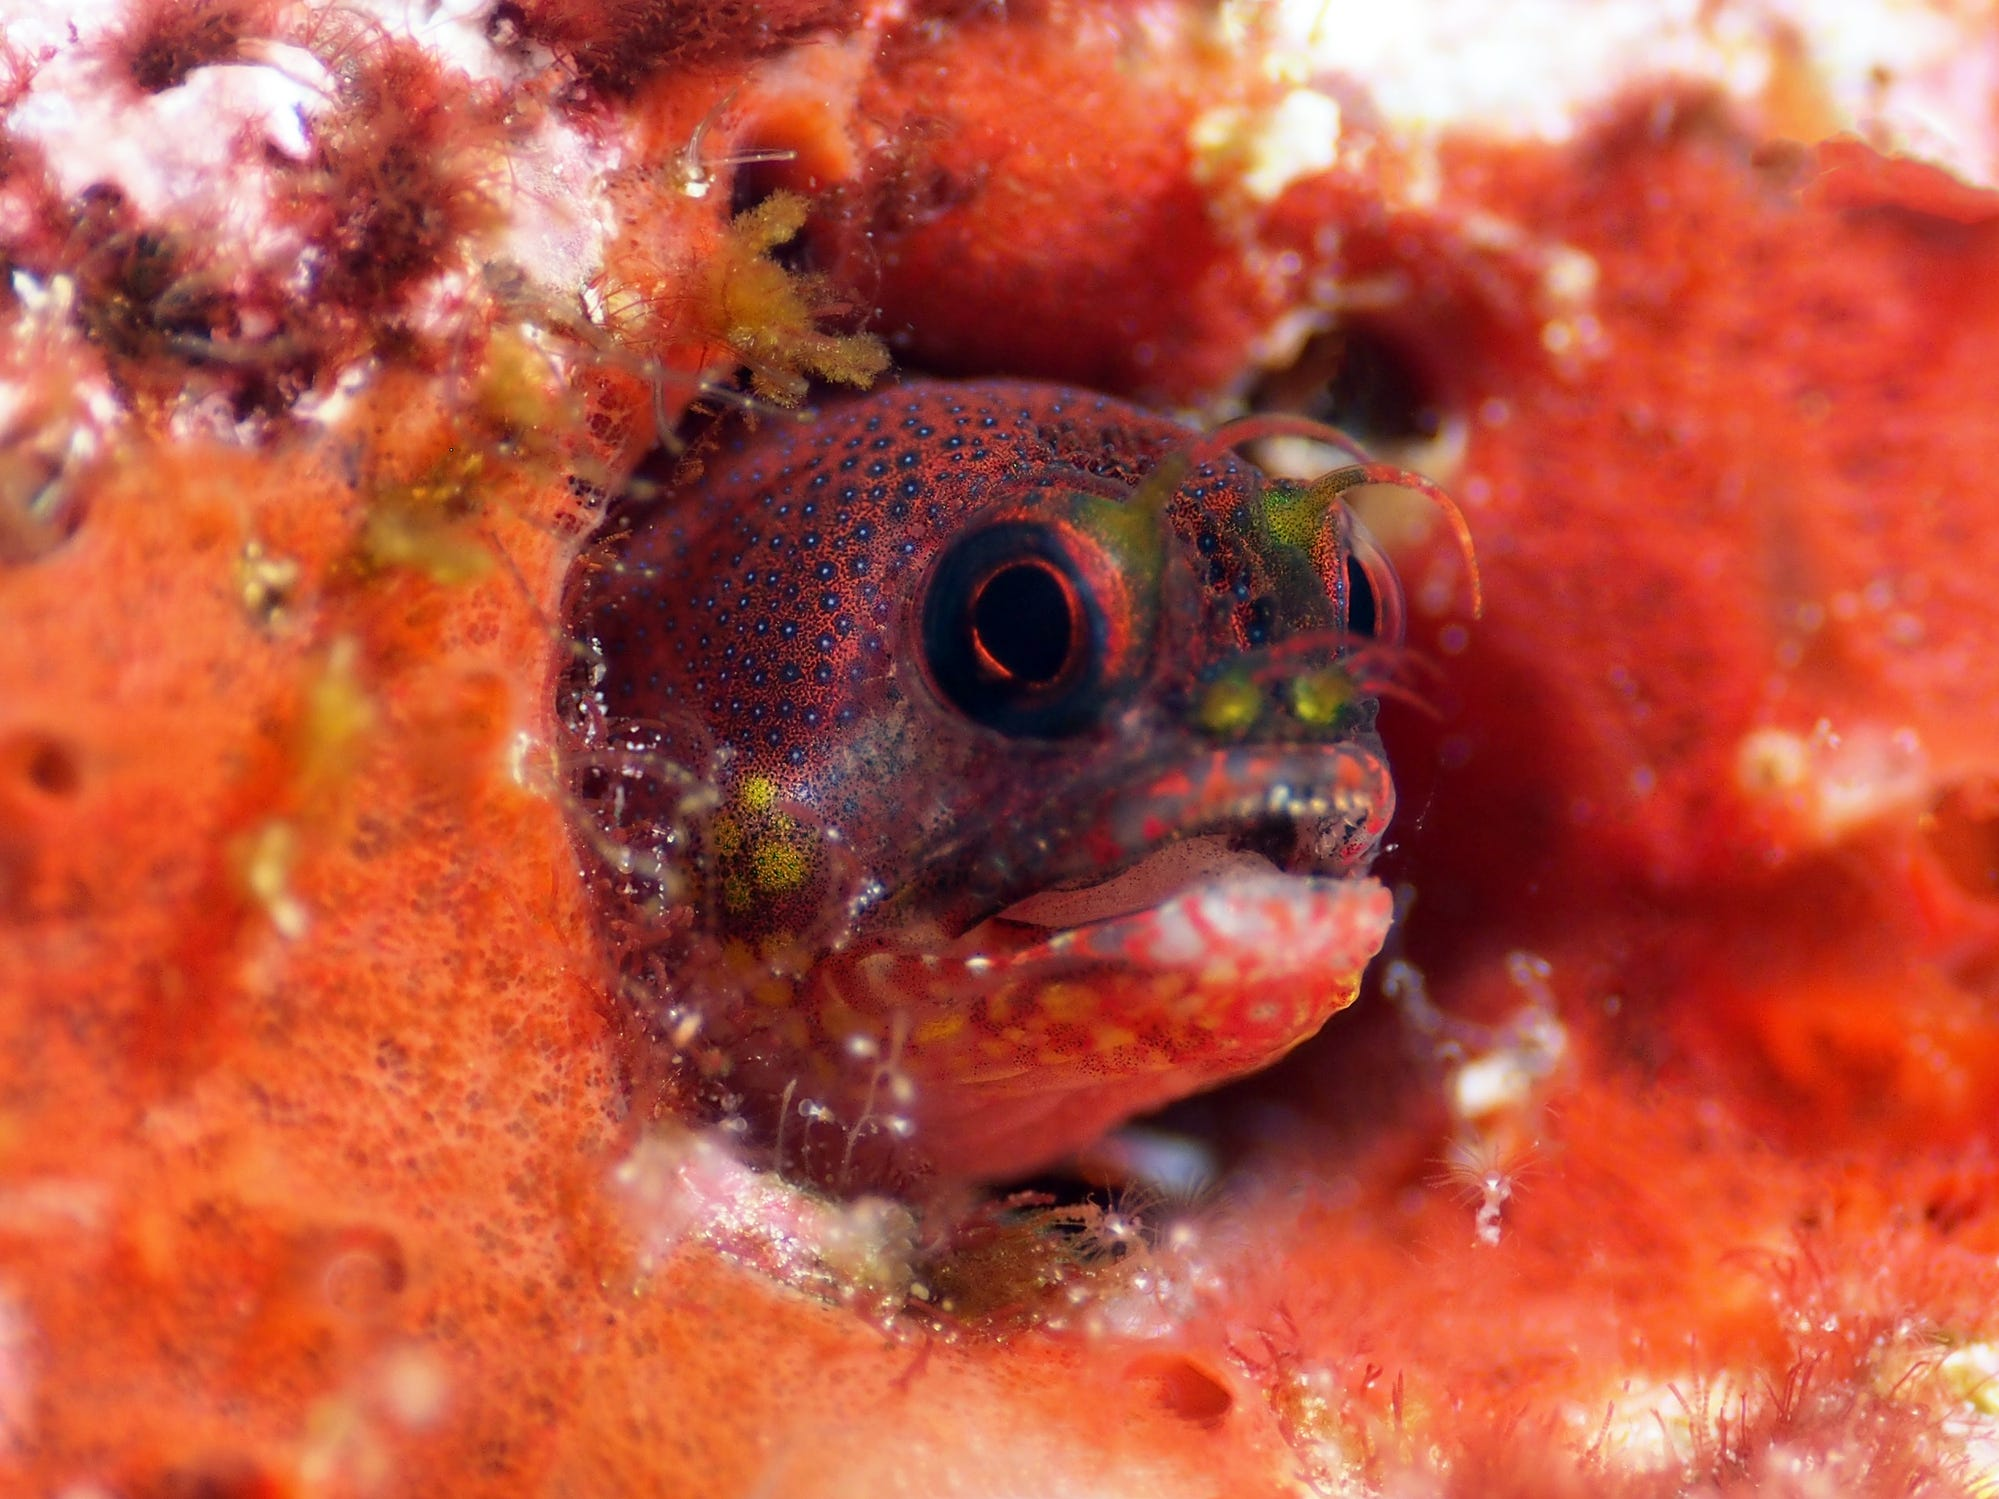 A barnacle blenny in the Galapagos Islands, Ecuador.